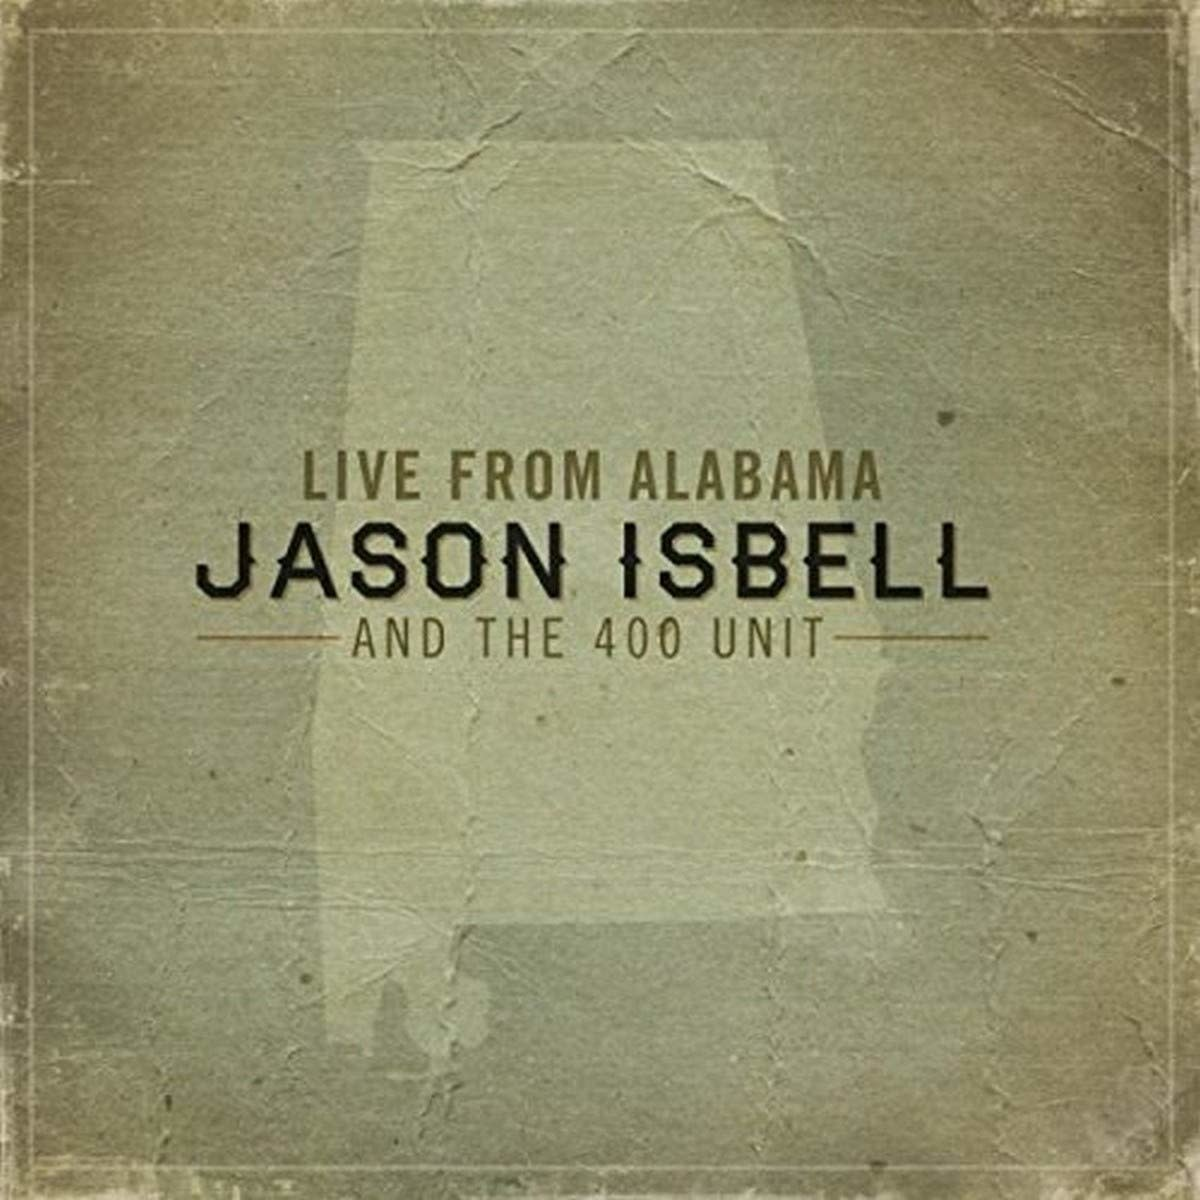 Jason Isbell And The 400 Unit – Live From Alabama